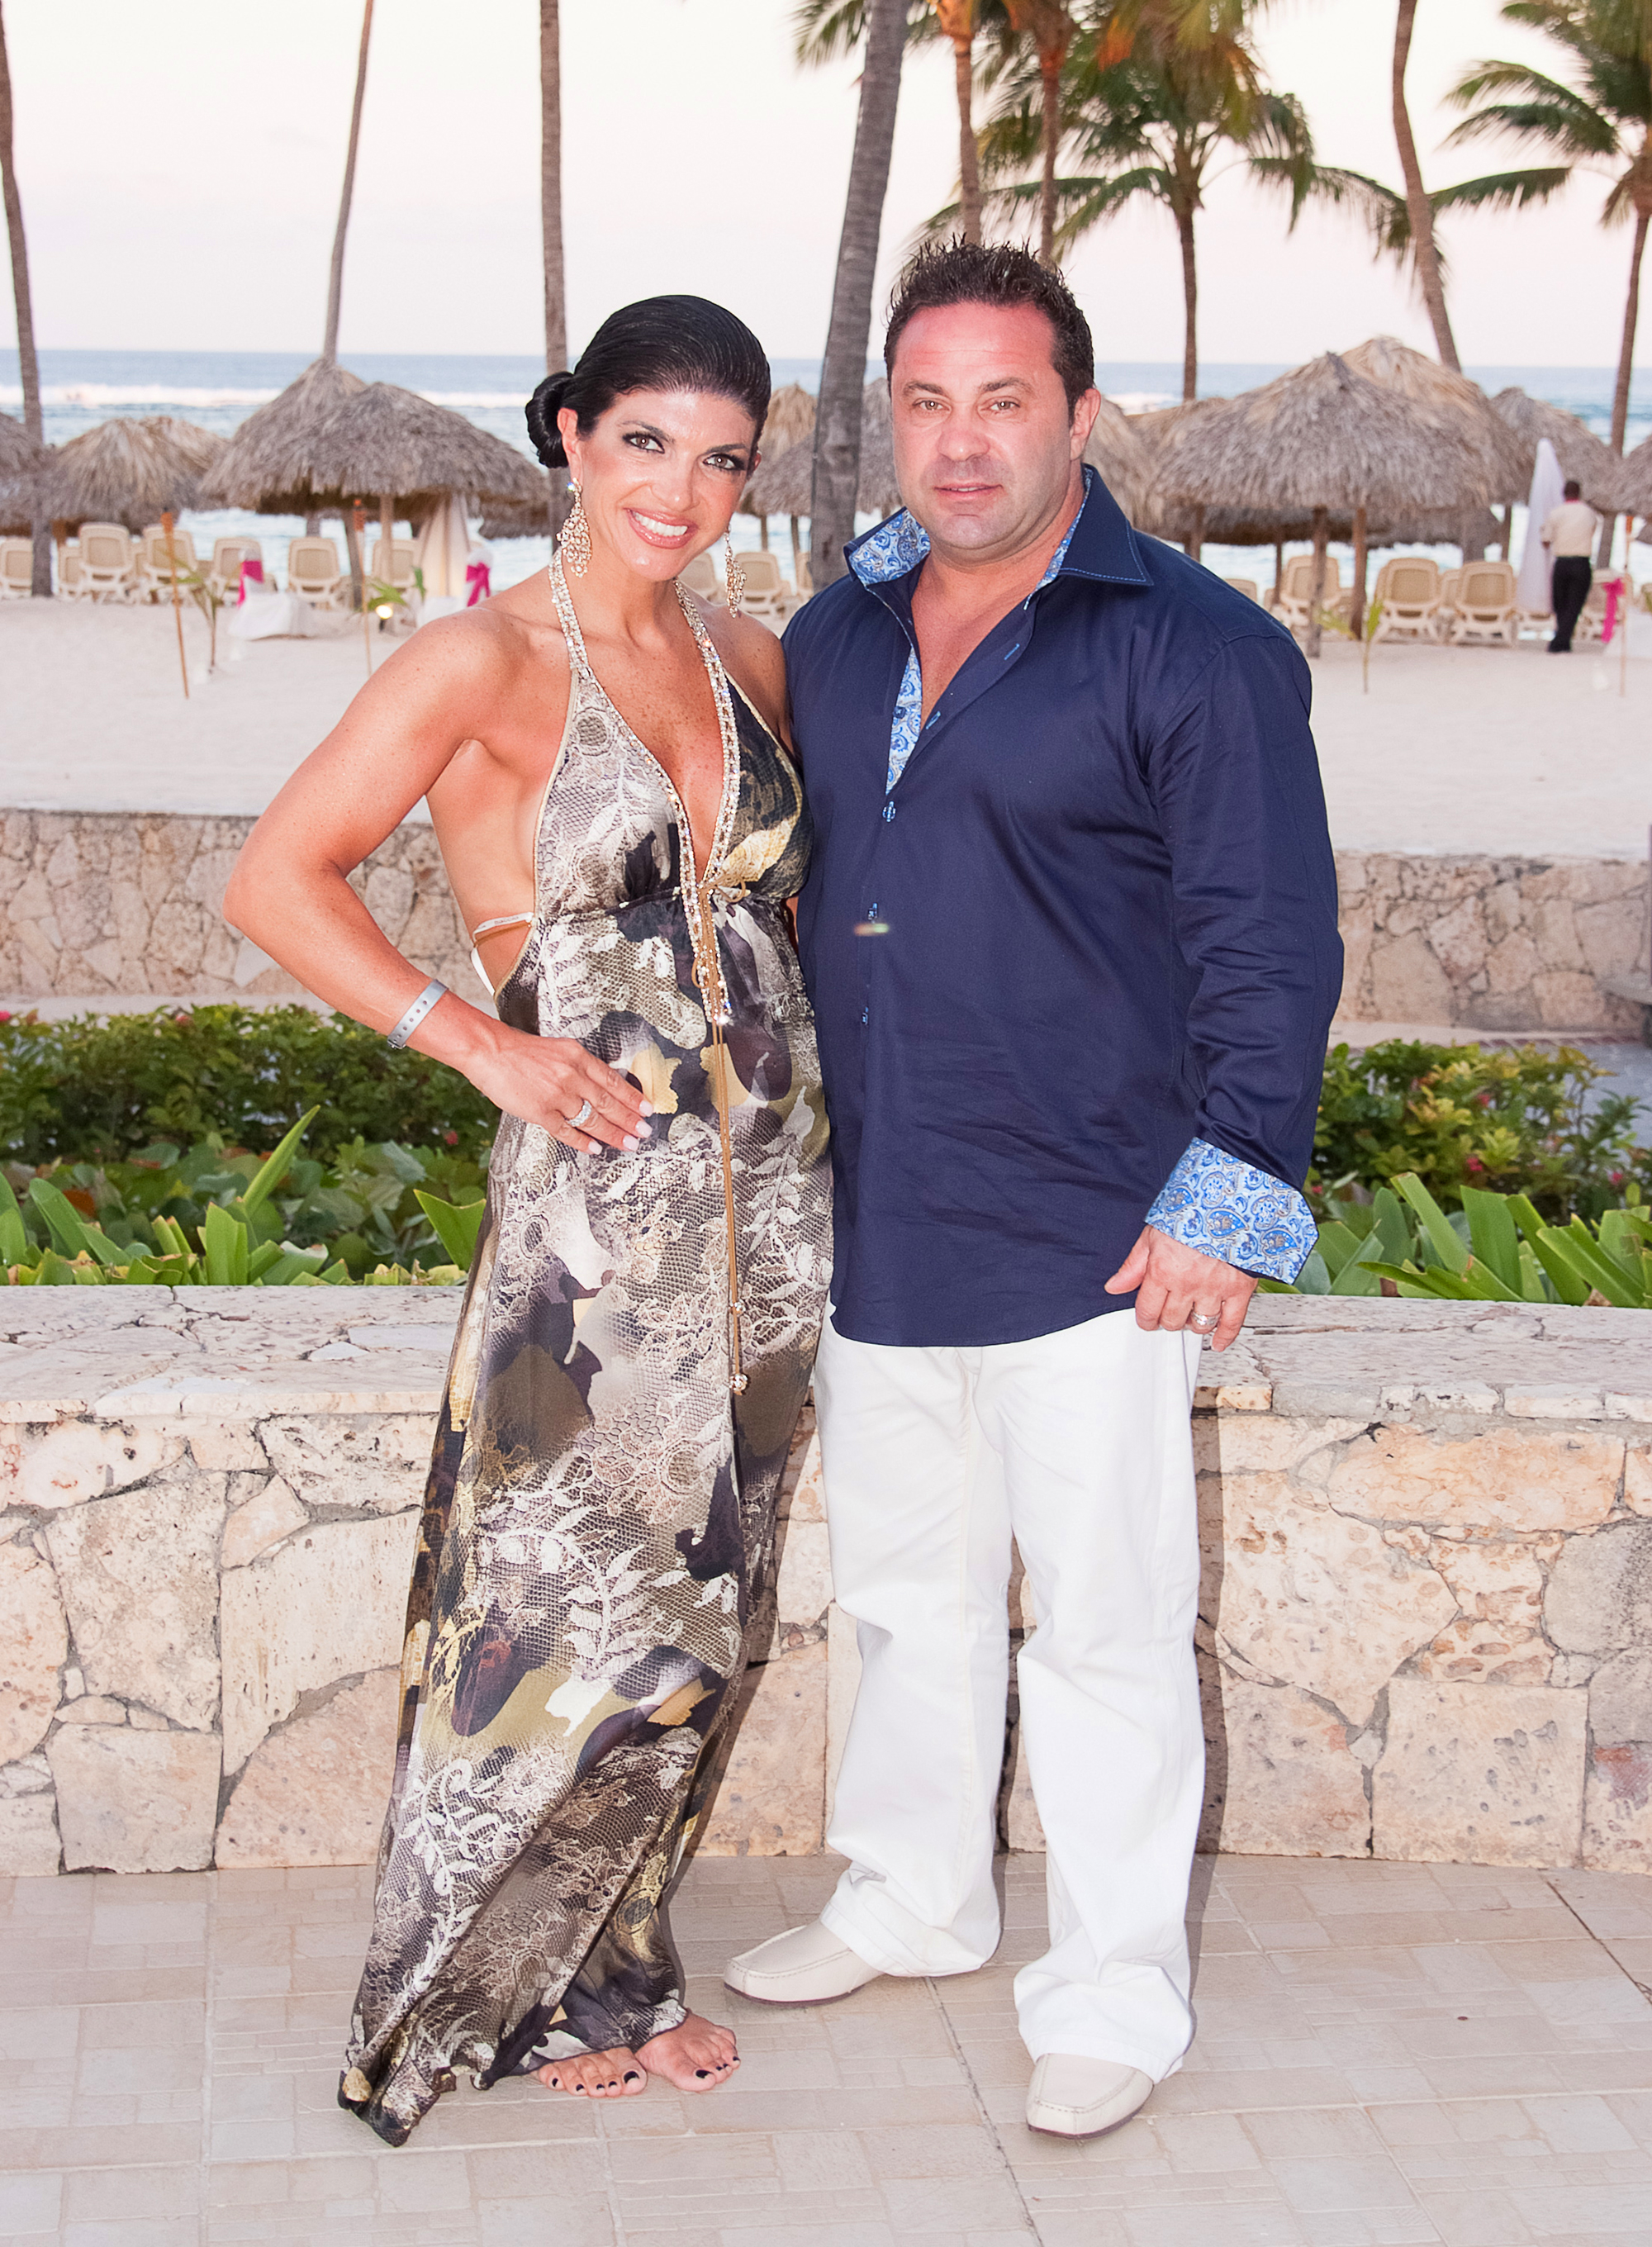 """Everything Teresa Giudice Has Said About Joe Giudice's Deportation - Teresa said during the RHONJ season 8 reunion in January 2018 that she """"wouldn't mind"""" moving to Italy if her husband was deported. """"Italy's a beautiful place to live,"""" she said."""